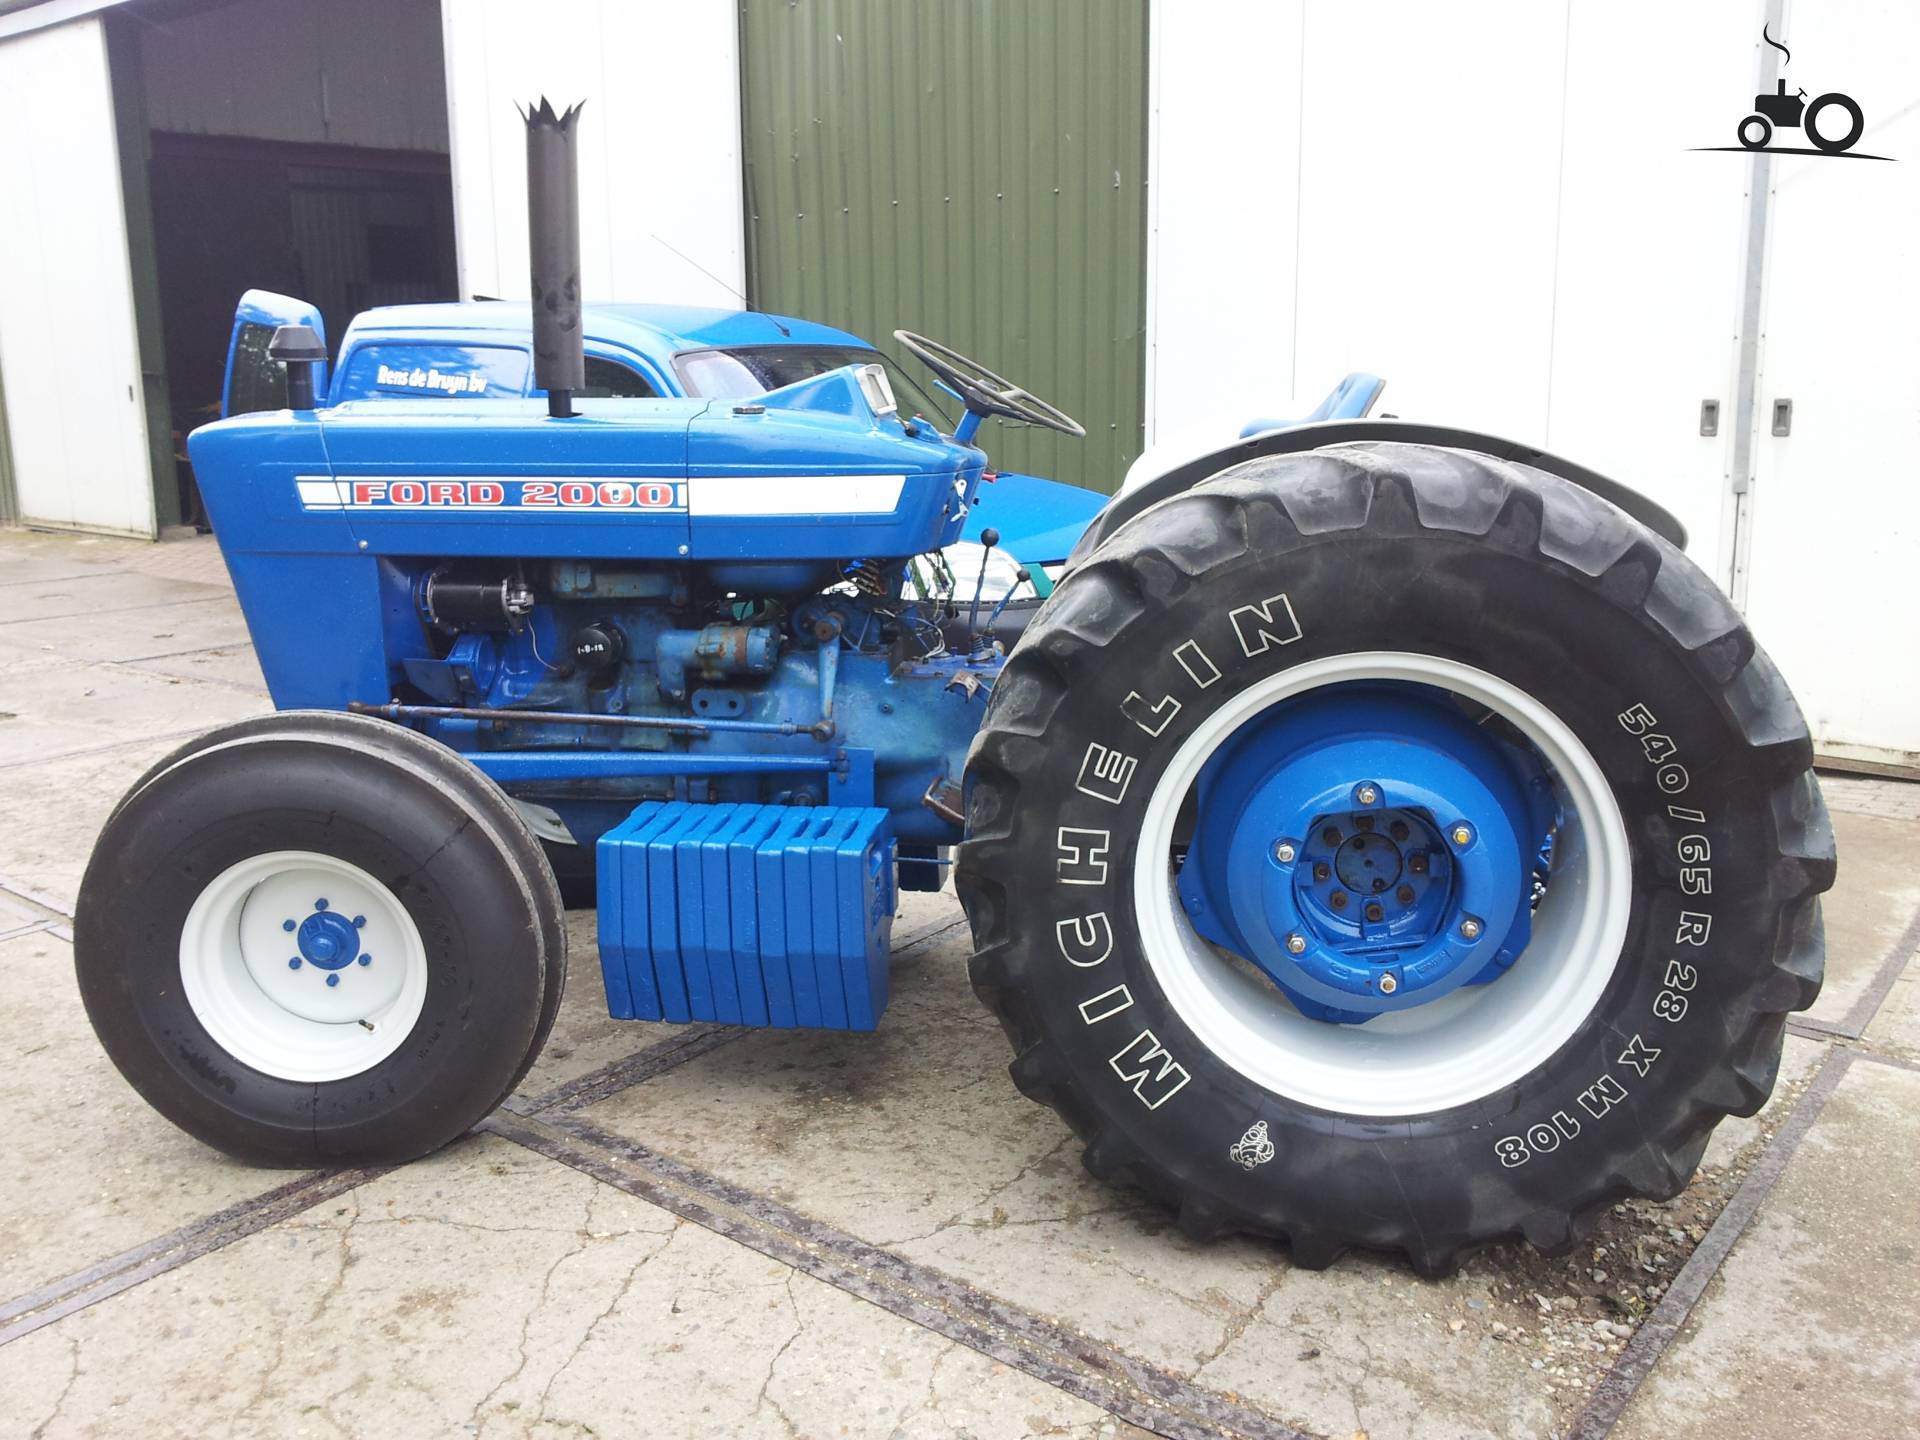 2000 Ford Tractor Information : Ford tractor torque specs